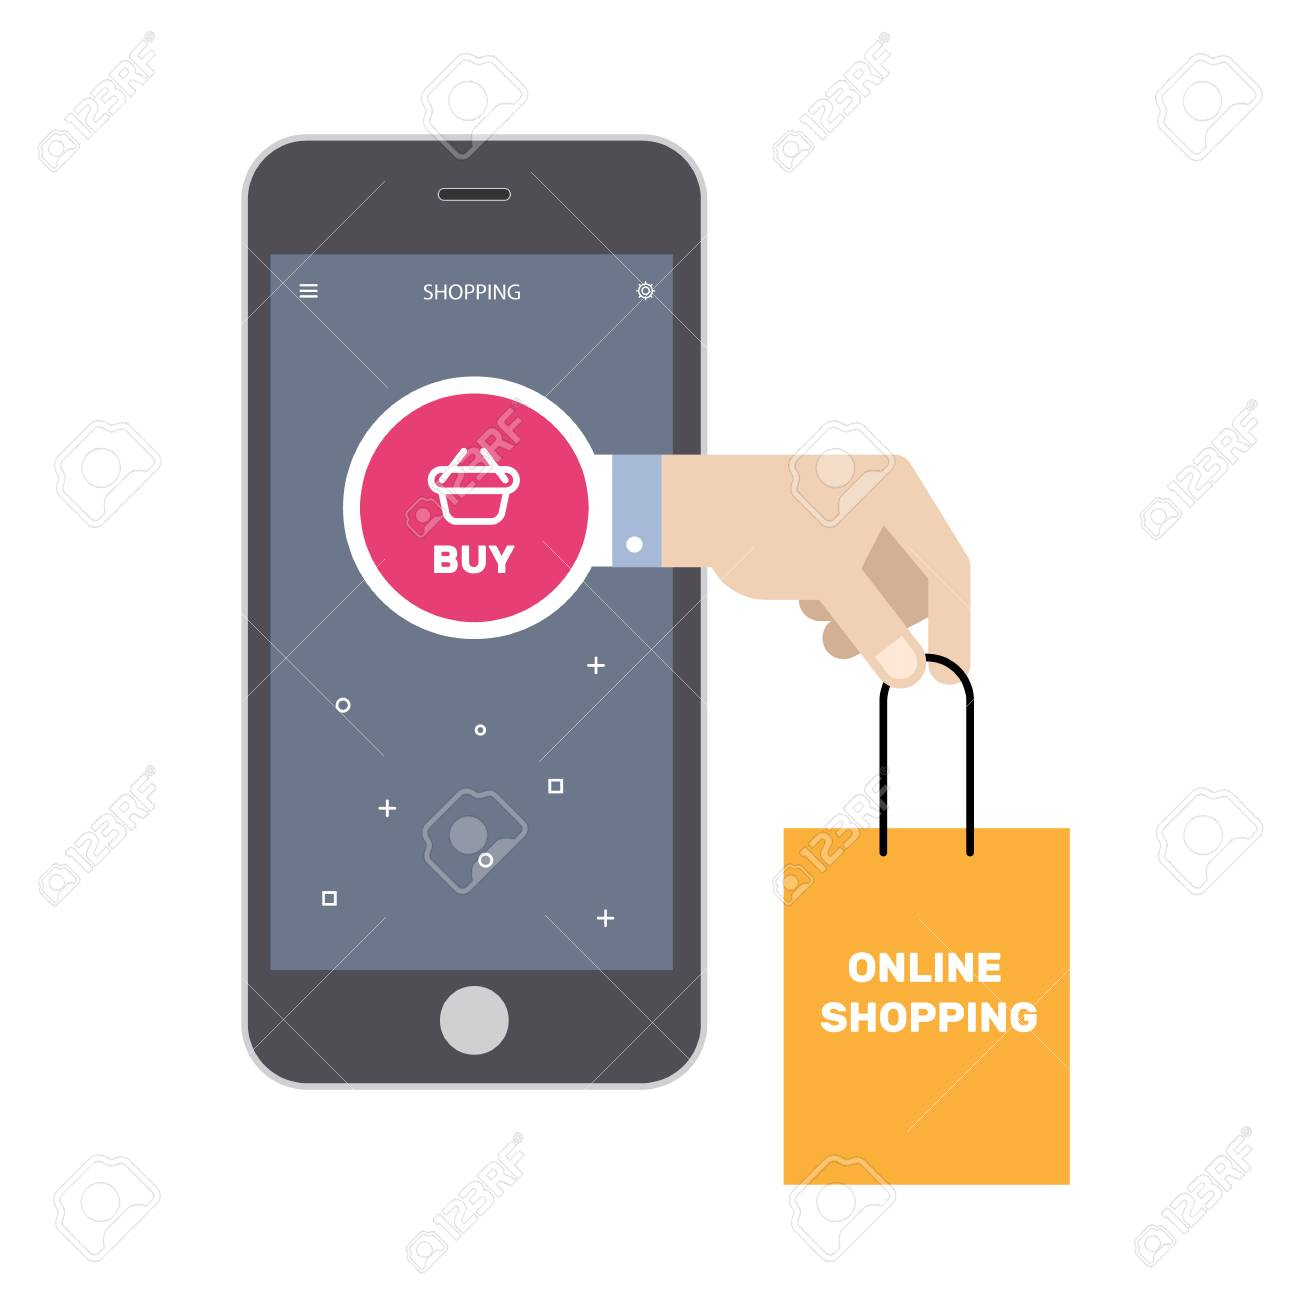 Online shopping marketing  Mobile phone services  Vector illustration